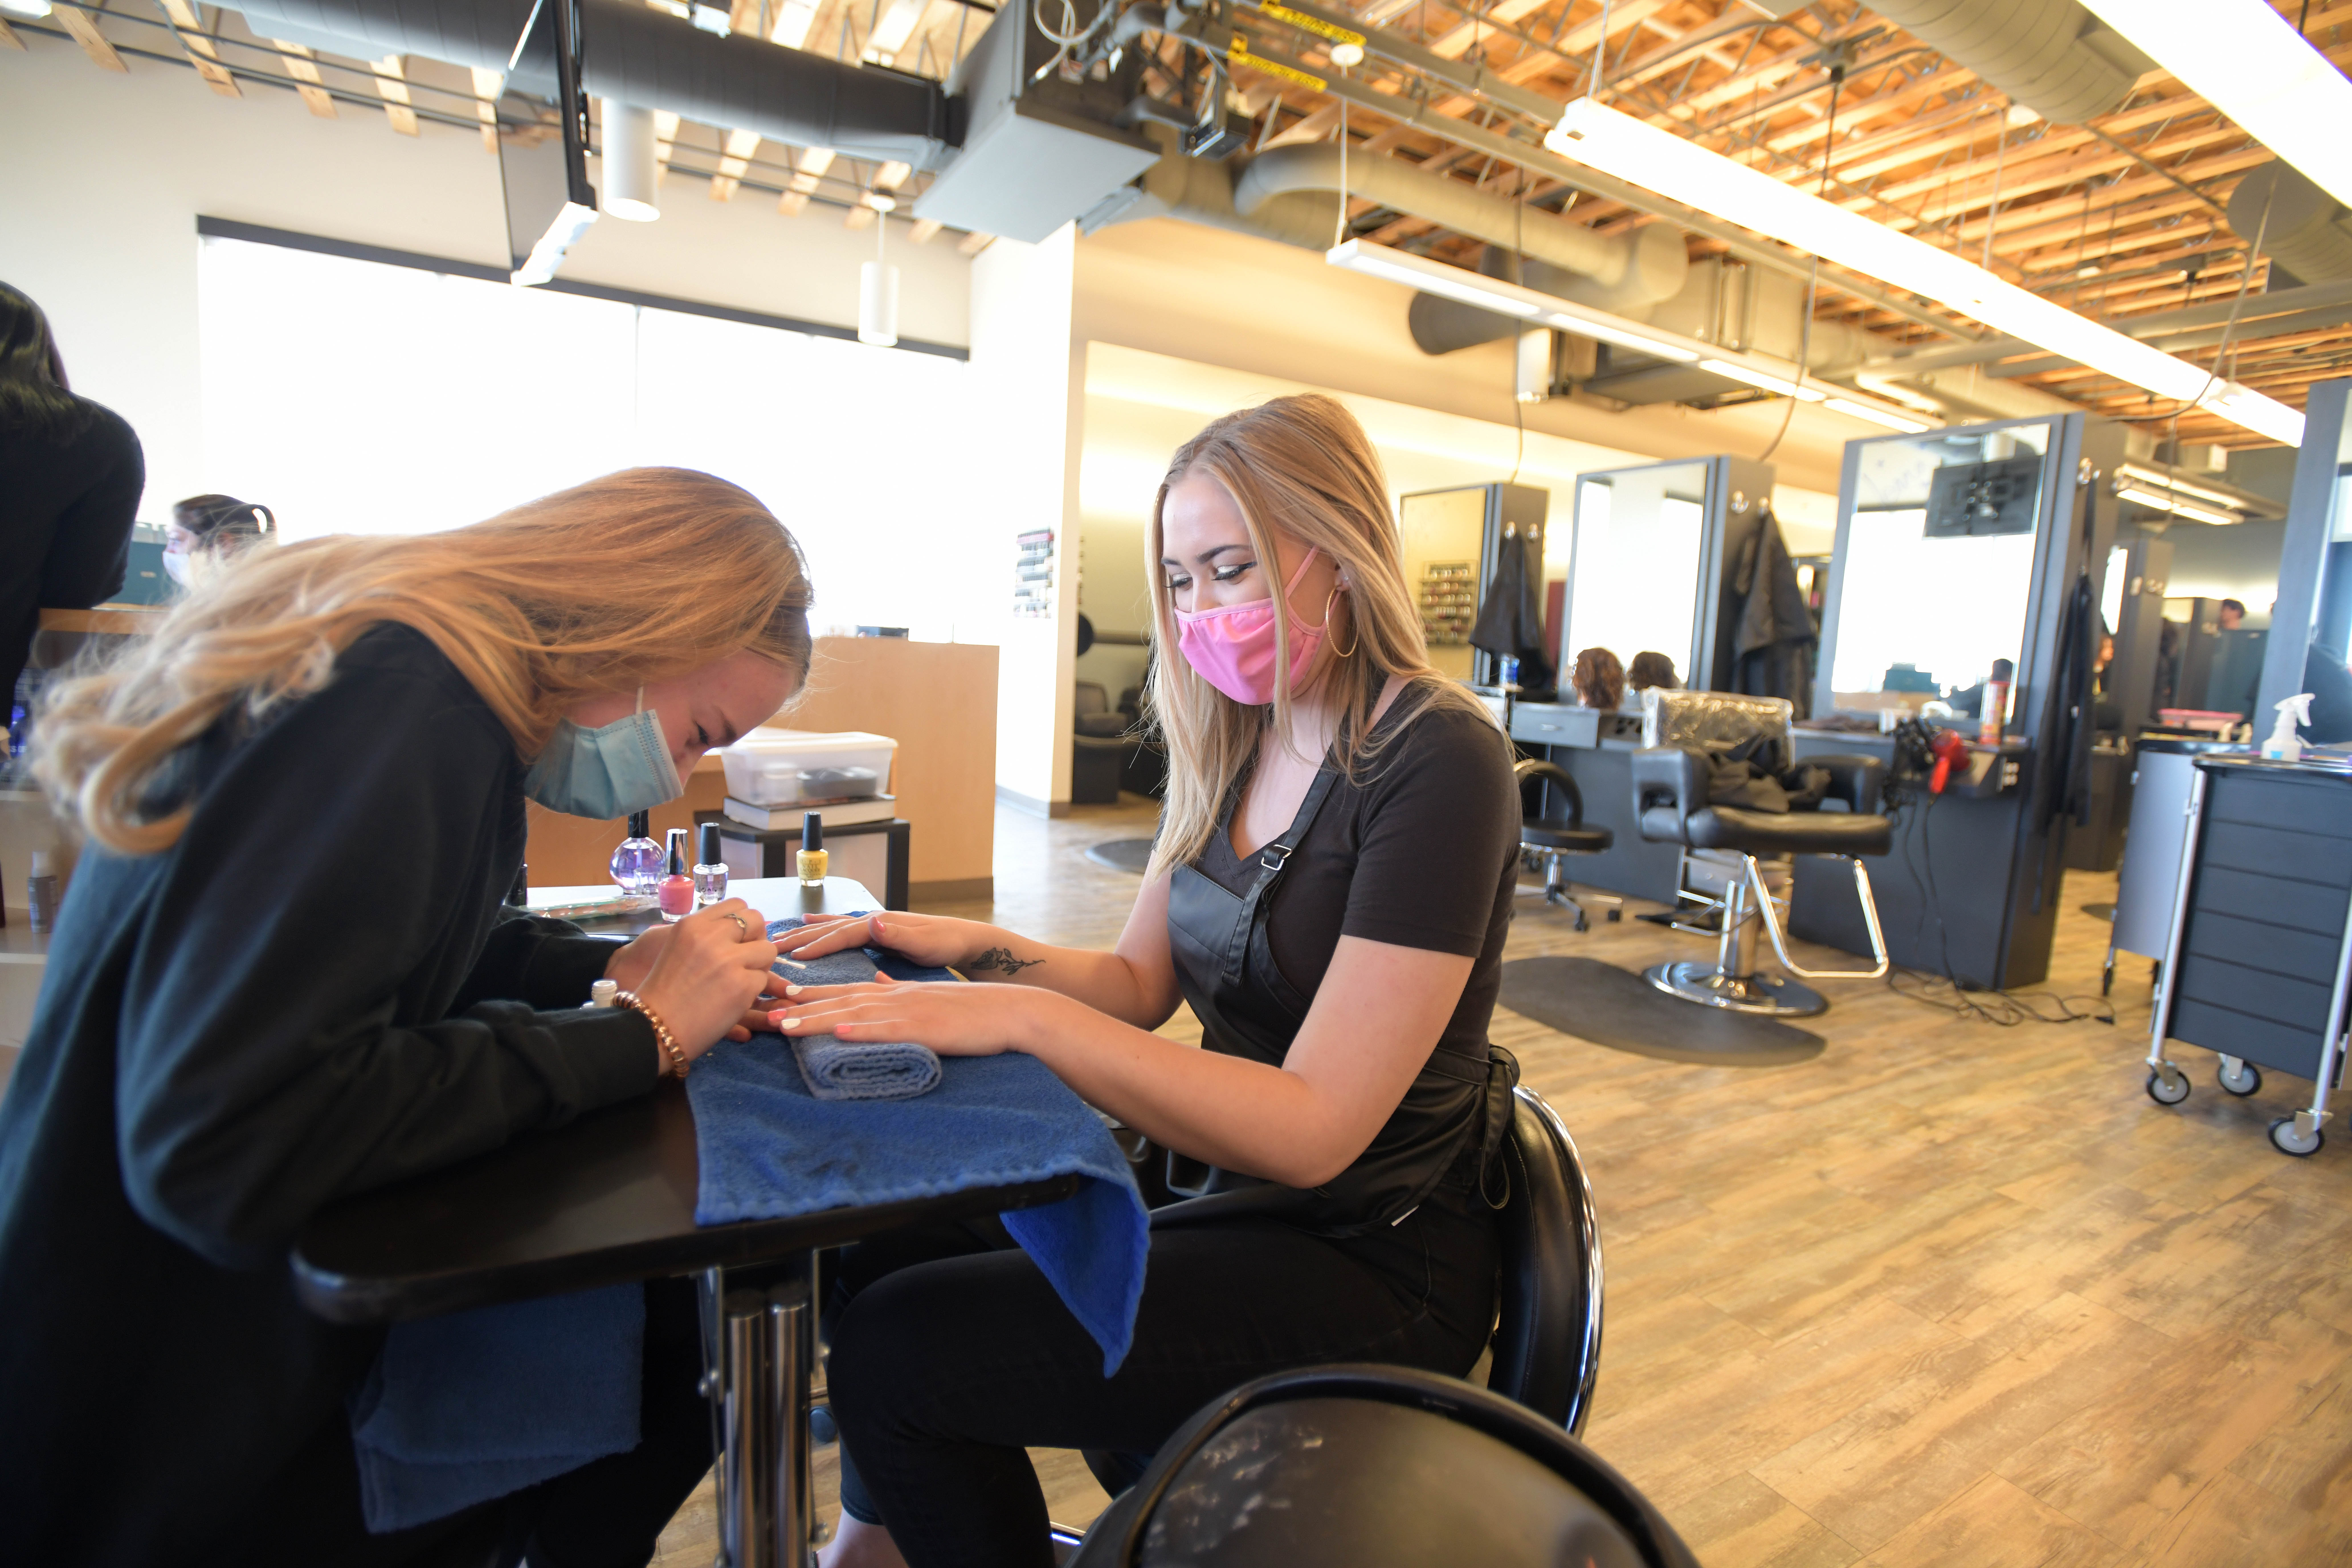 A blonde woman wearing a blue surgical mask paints the nails of another woman who's wearing a pink mask. They are sitting at a table.